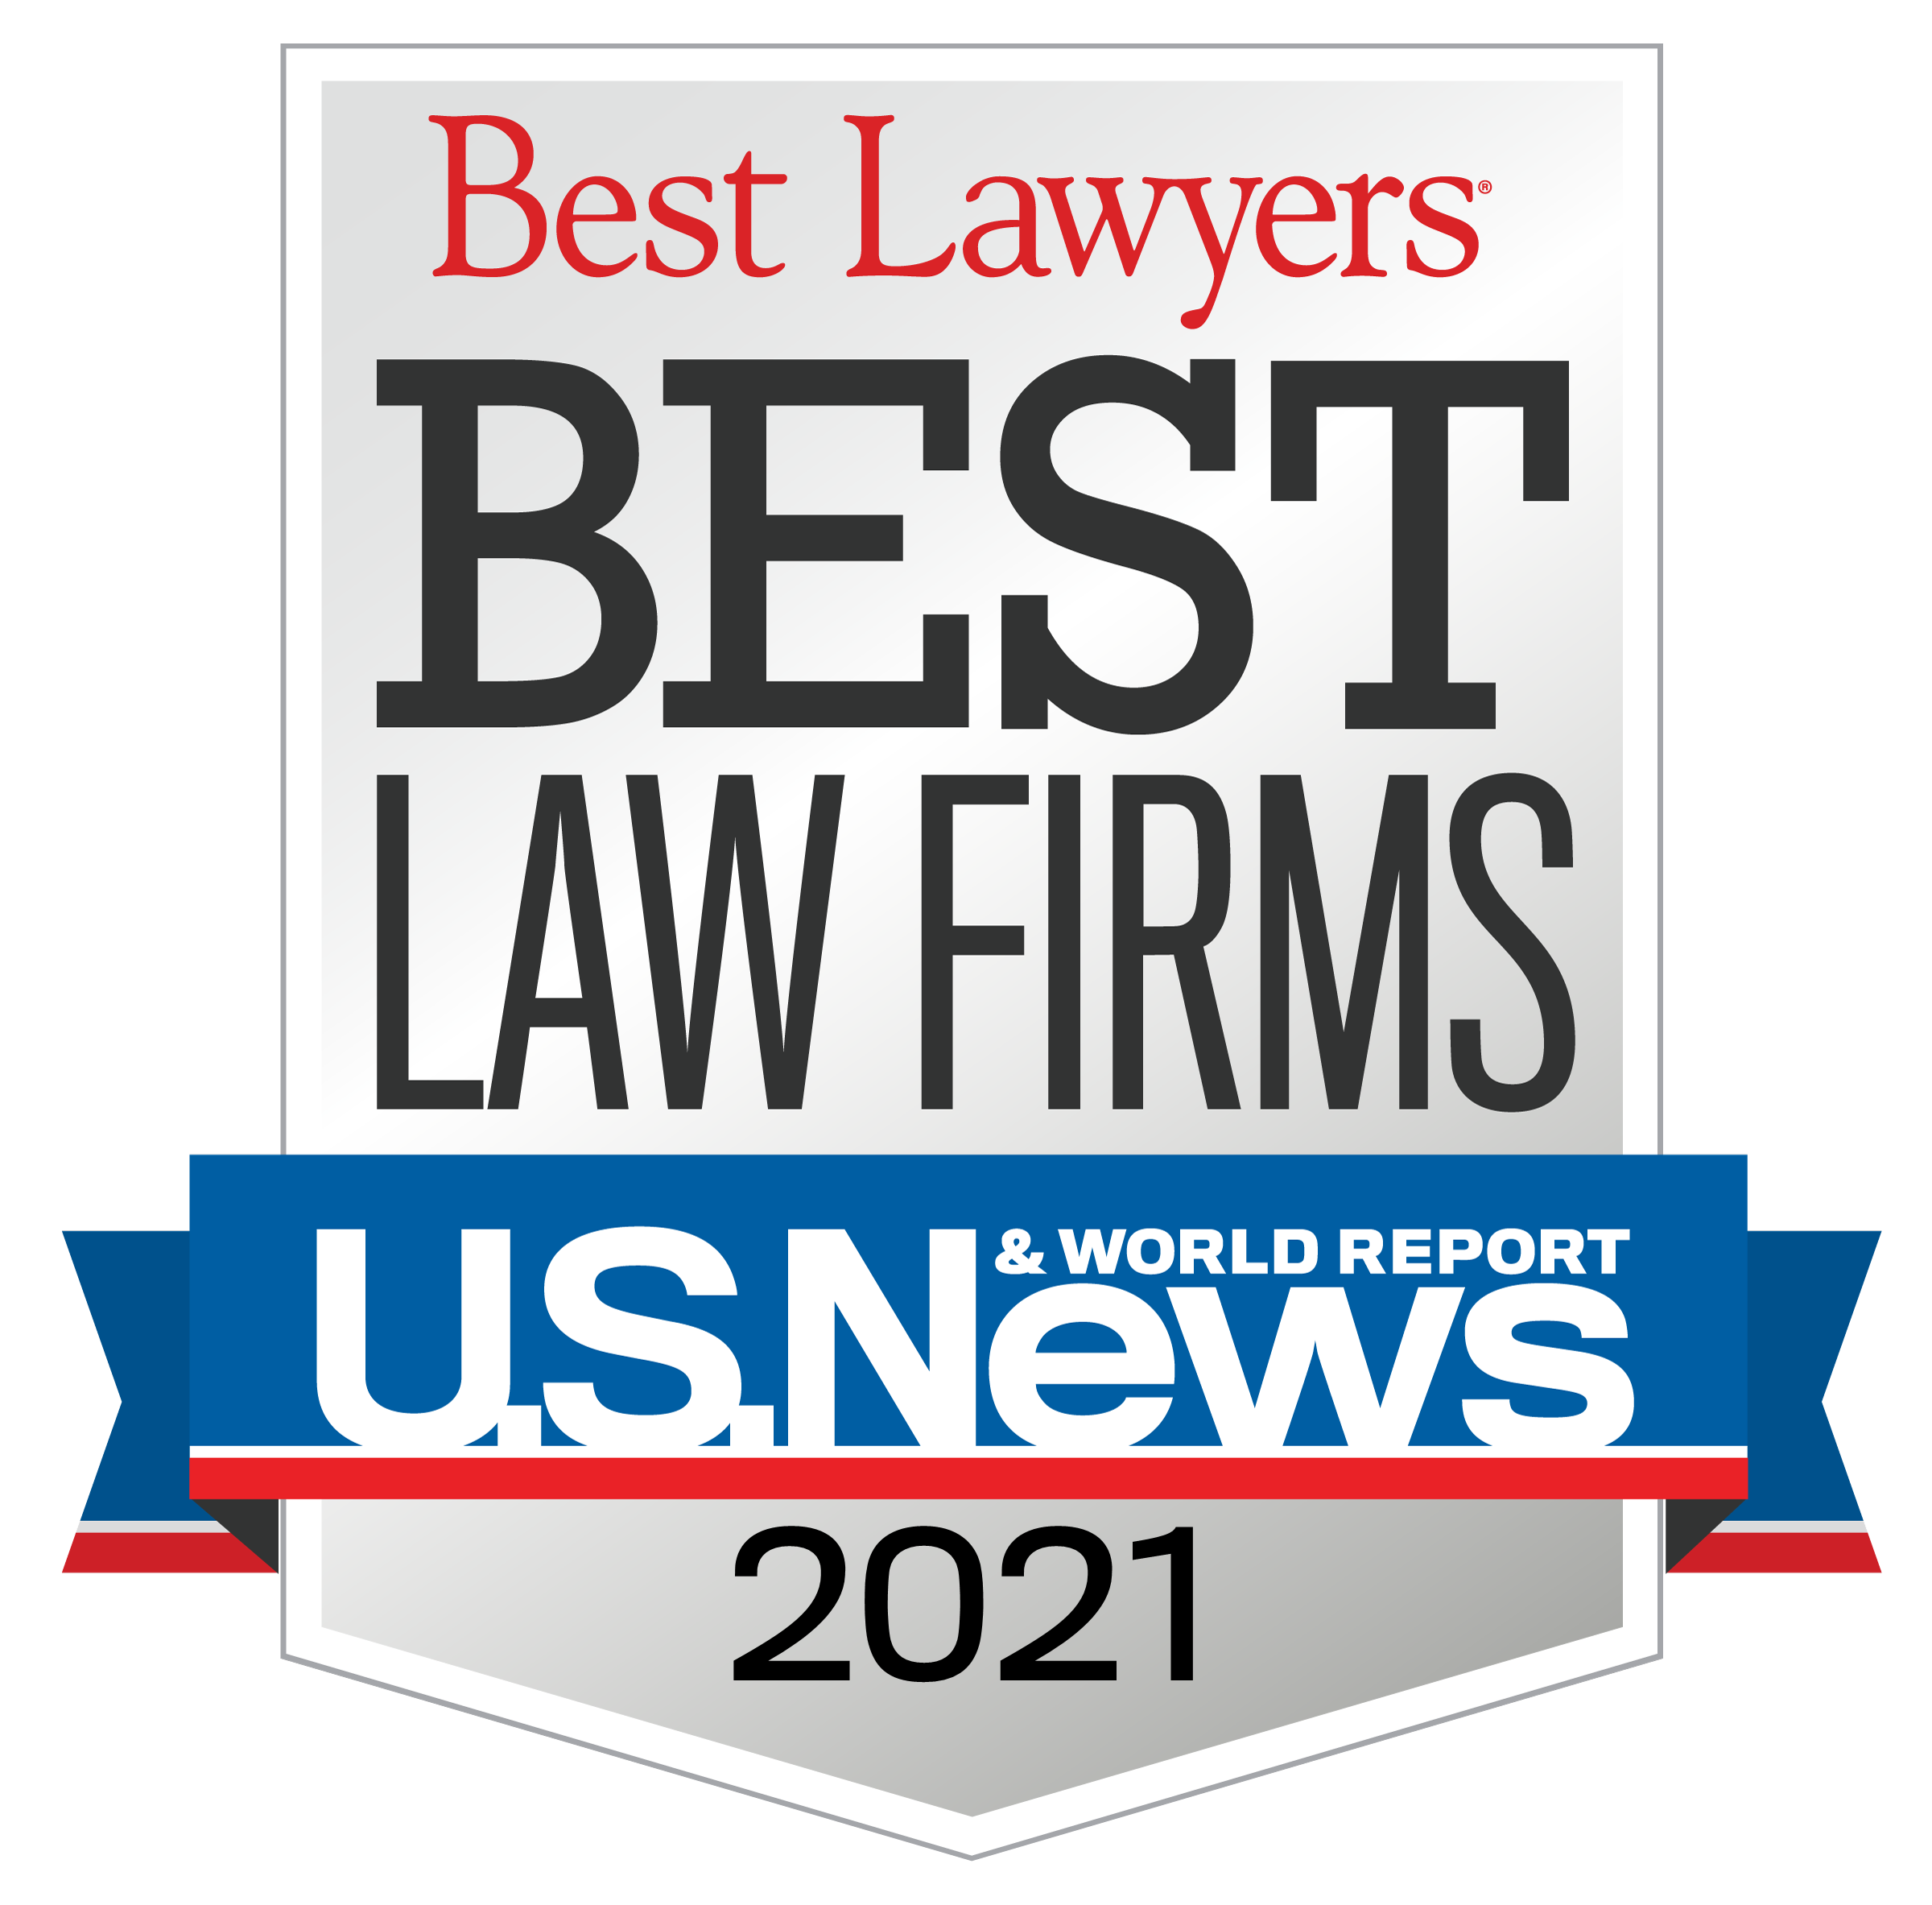 Best Lawyers Law Firms 2019